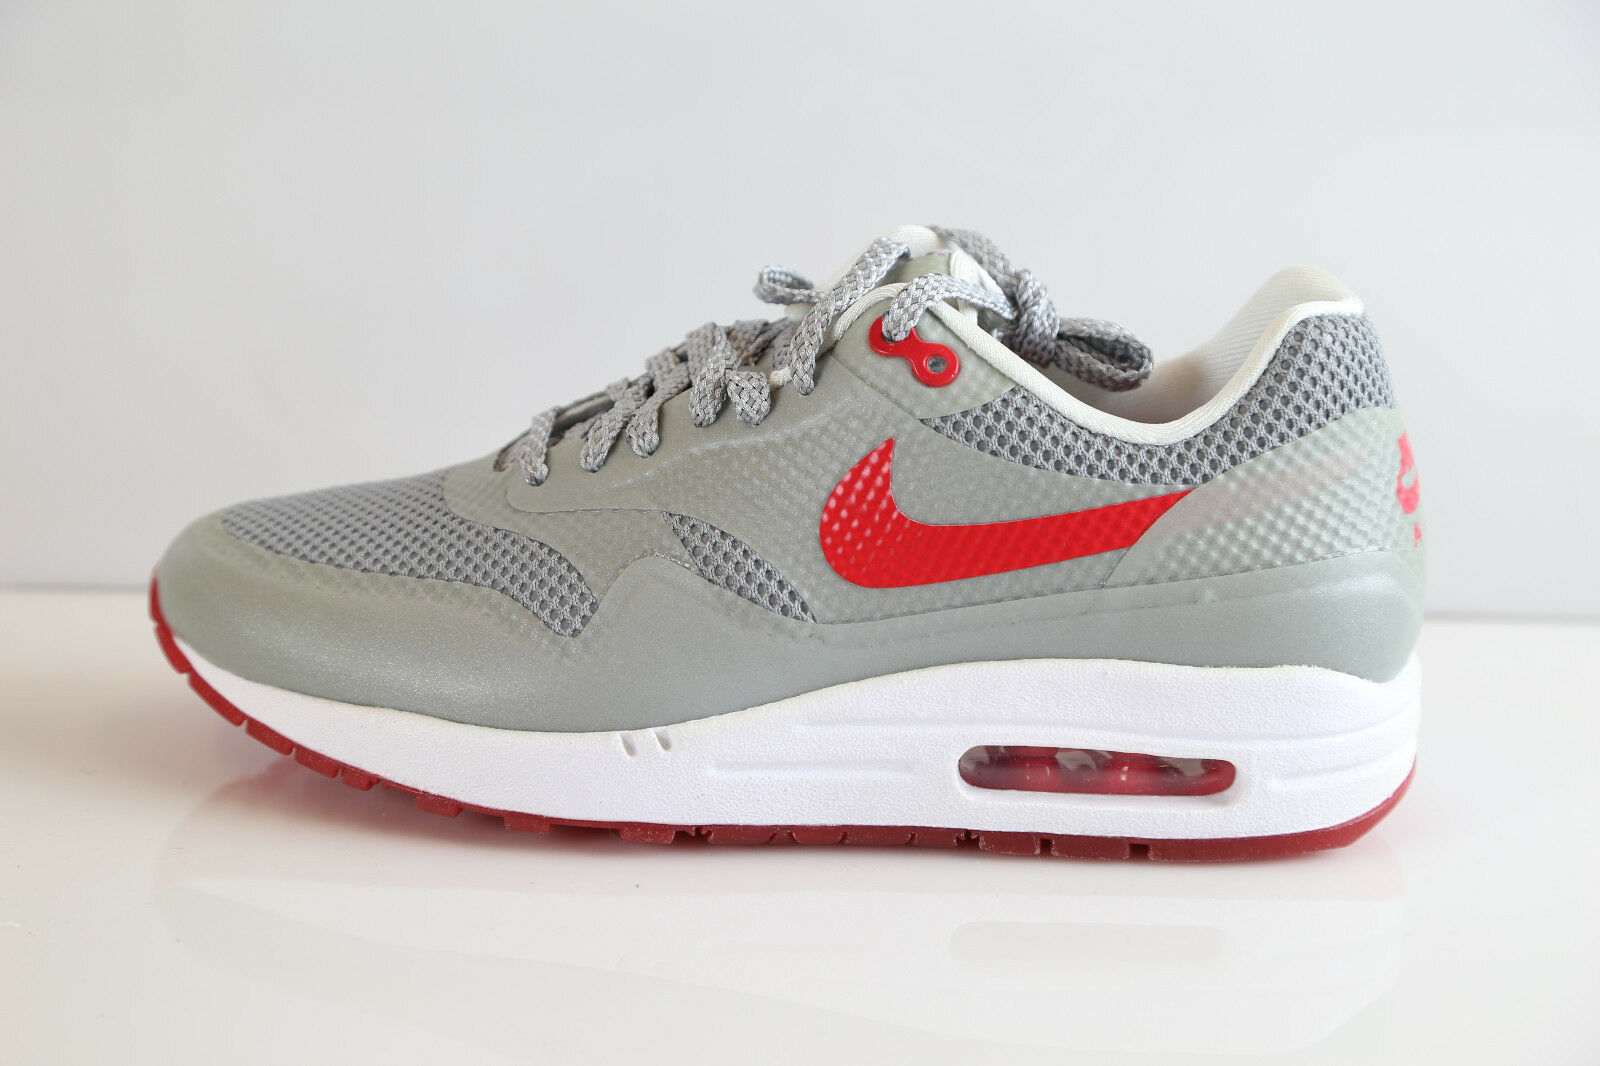 Nike Womens Air Max 1 Fuse Matte Silver Hyper Red 580783-001 7-11 90